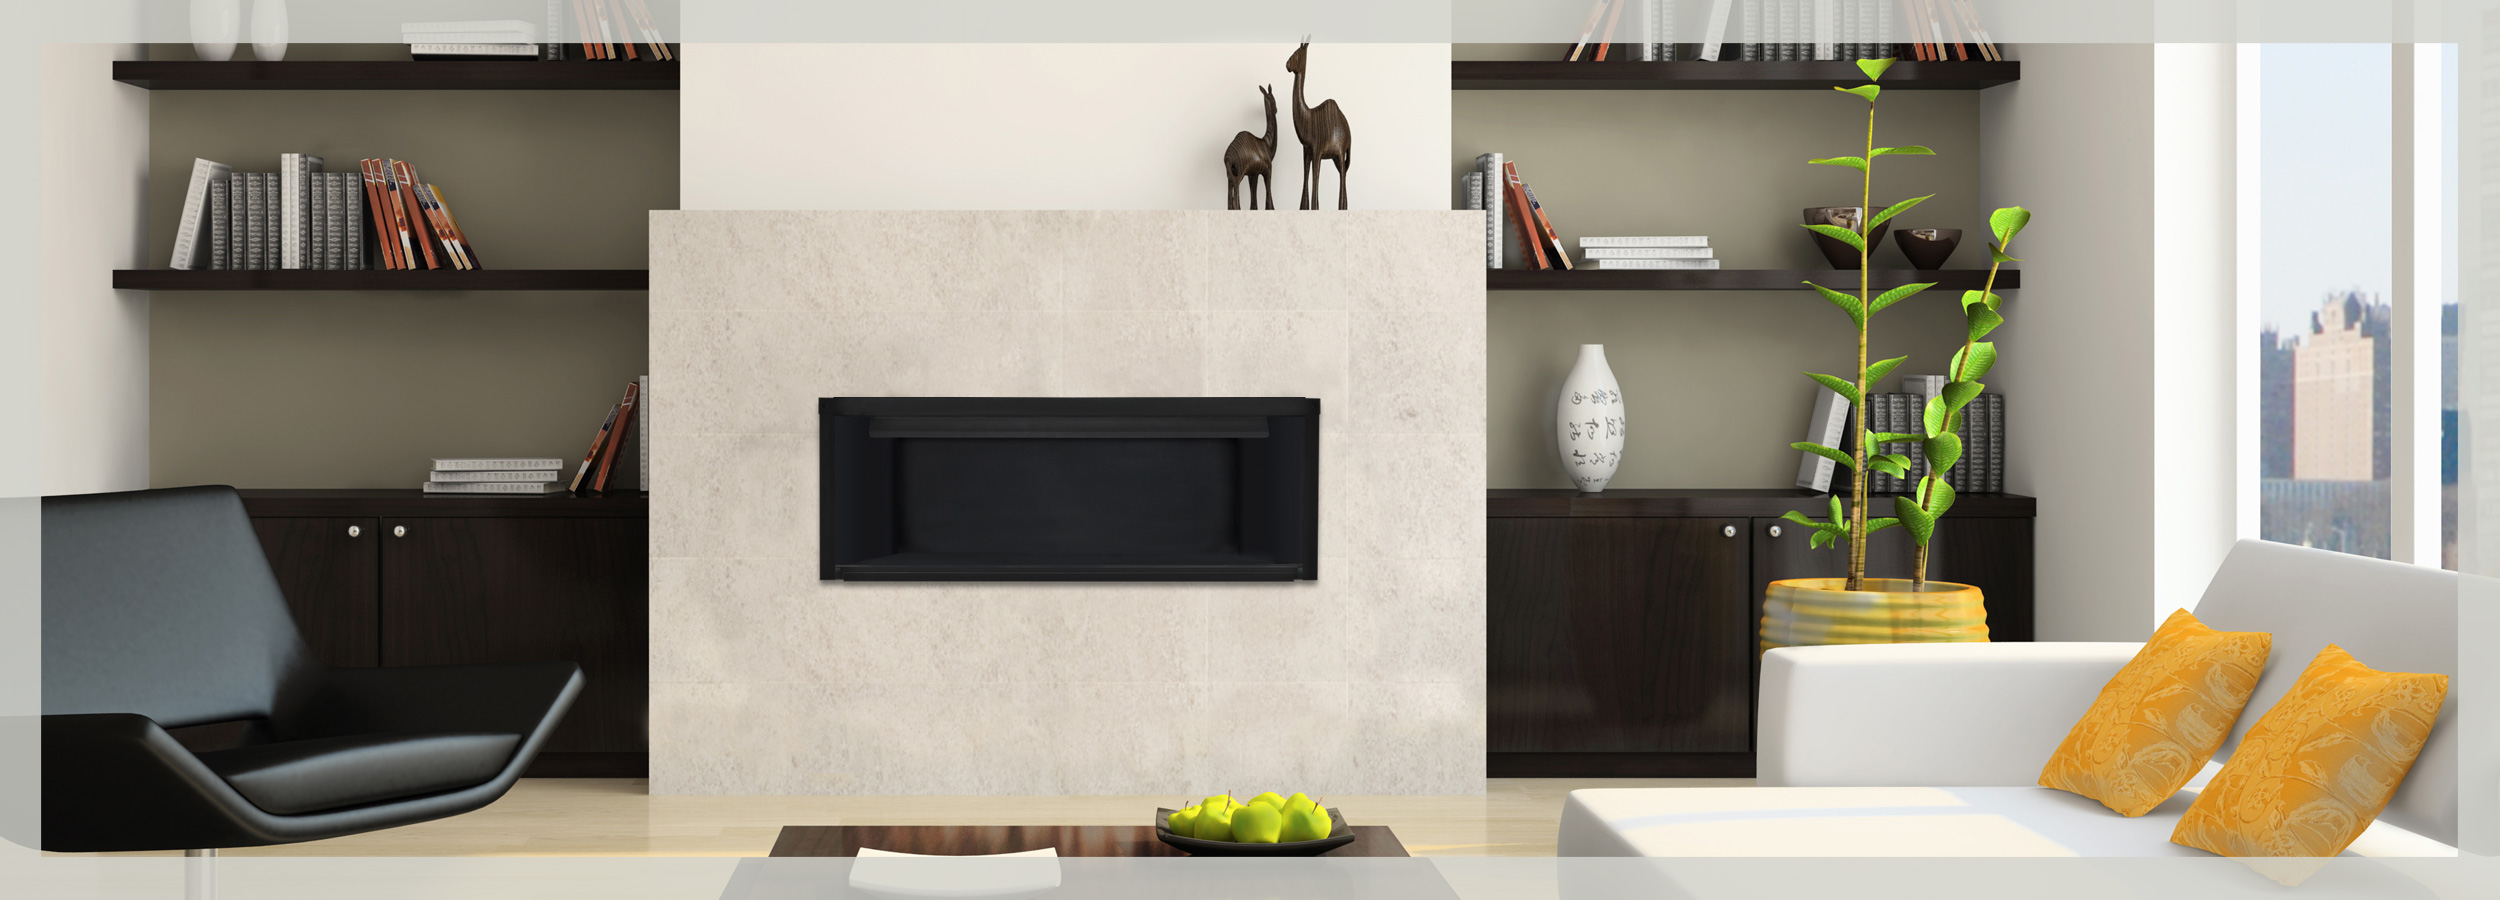 2500x900-fds-fireplace-slider1